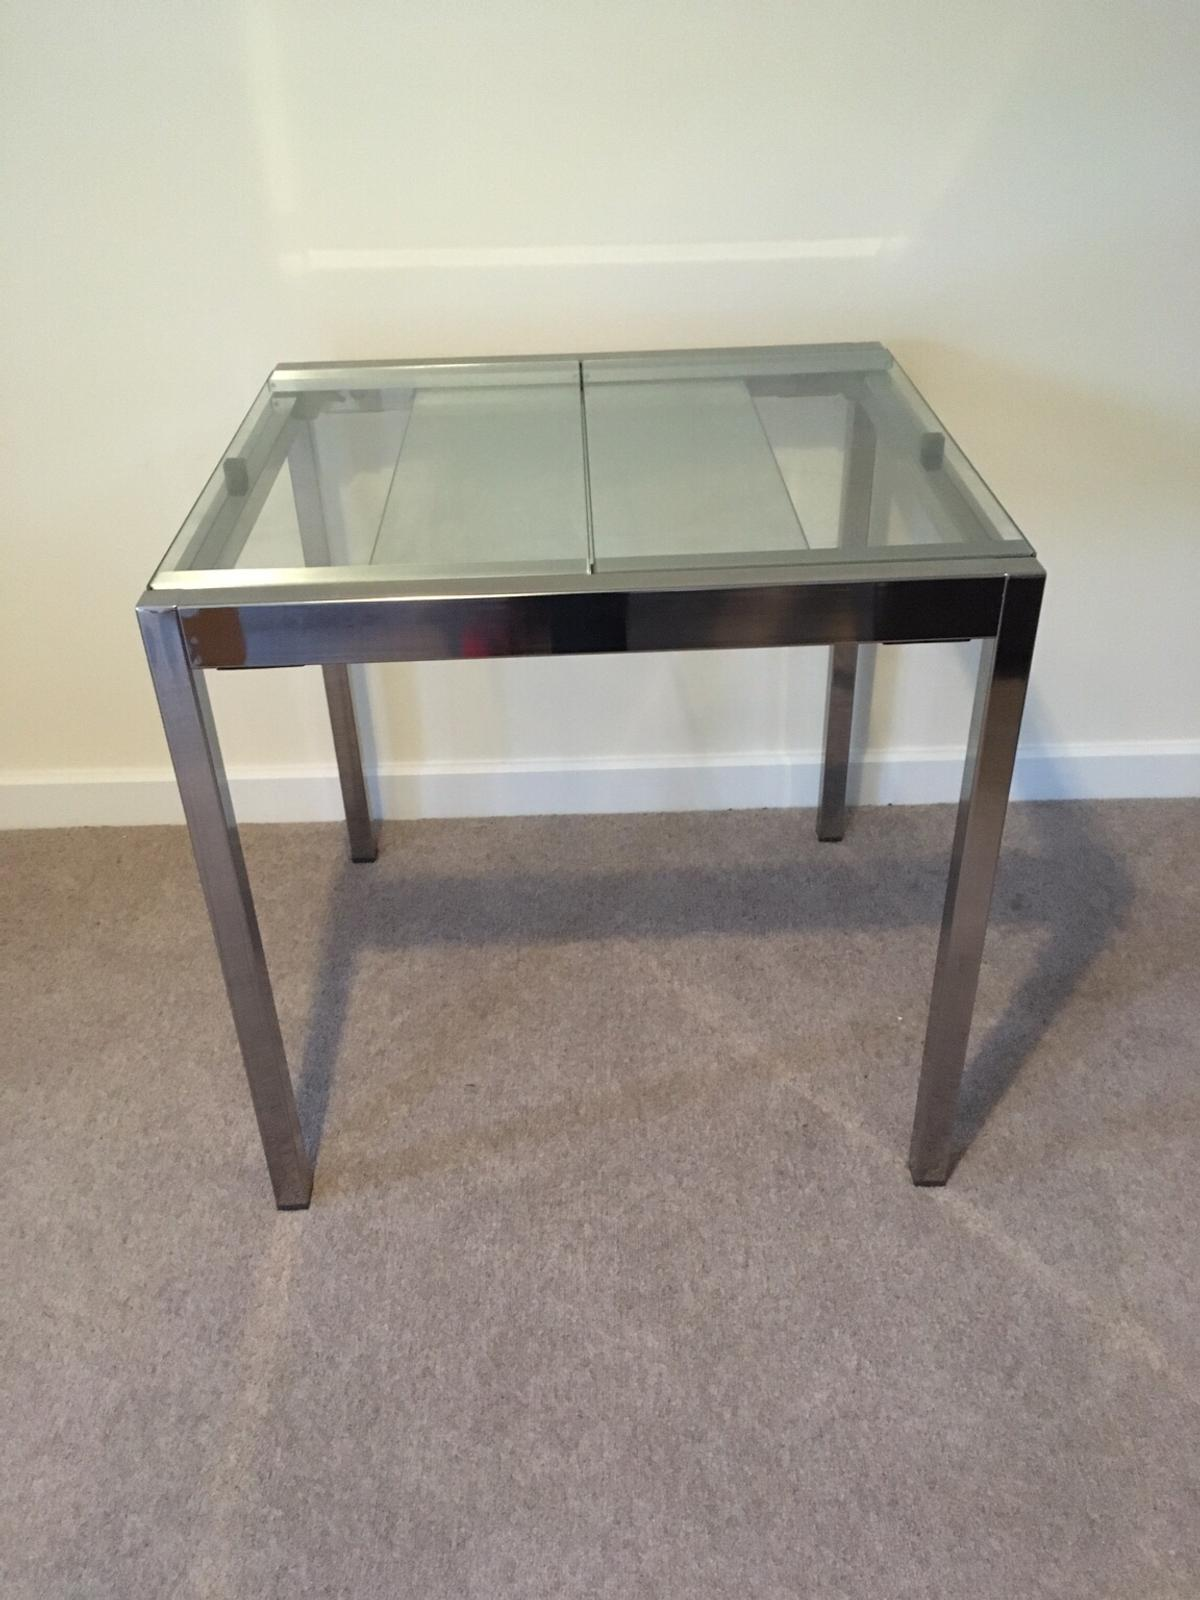 Ikea Extendable Glass Dining Table In Rh20 Horsham For 50 00 For Sale Shpock